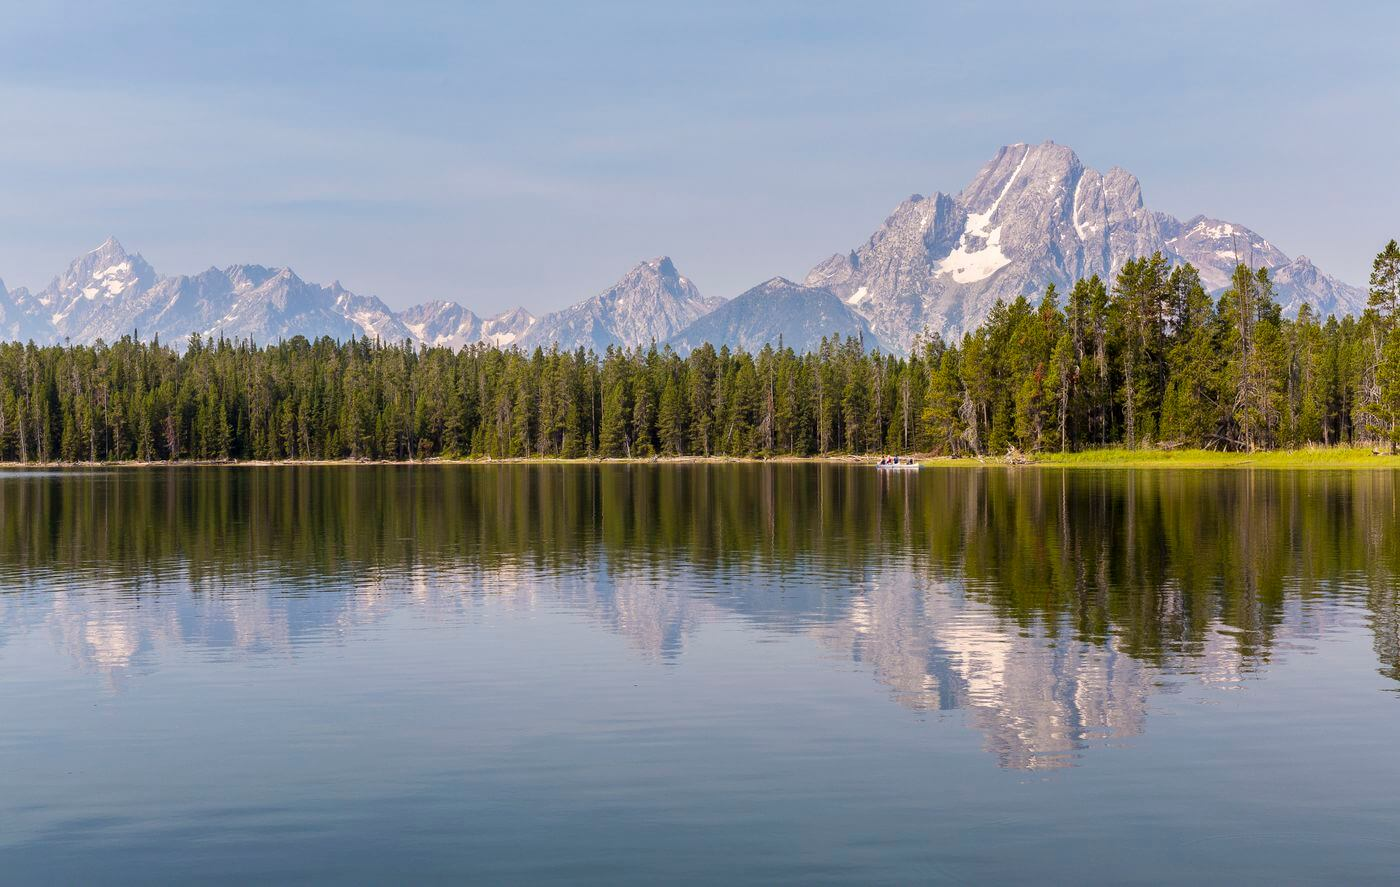 balade en bateau lac grand teton national parc